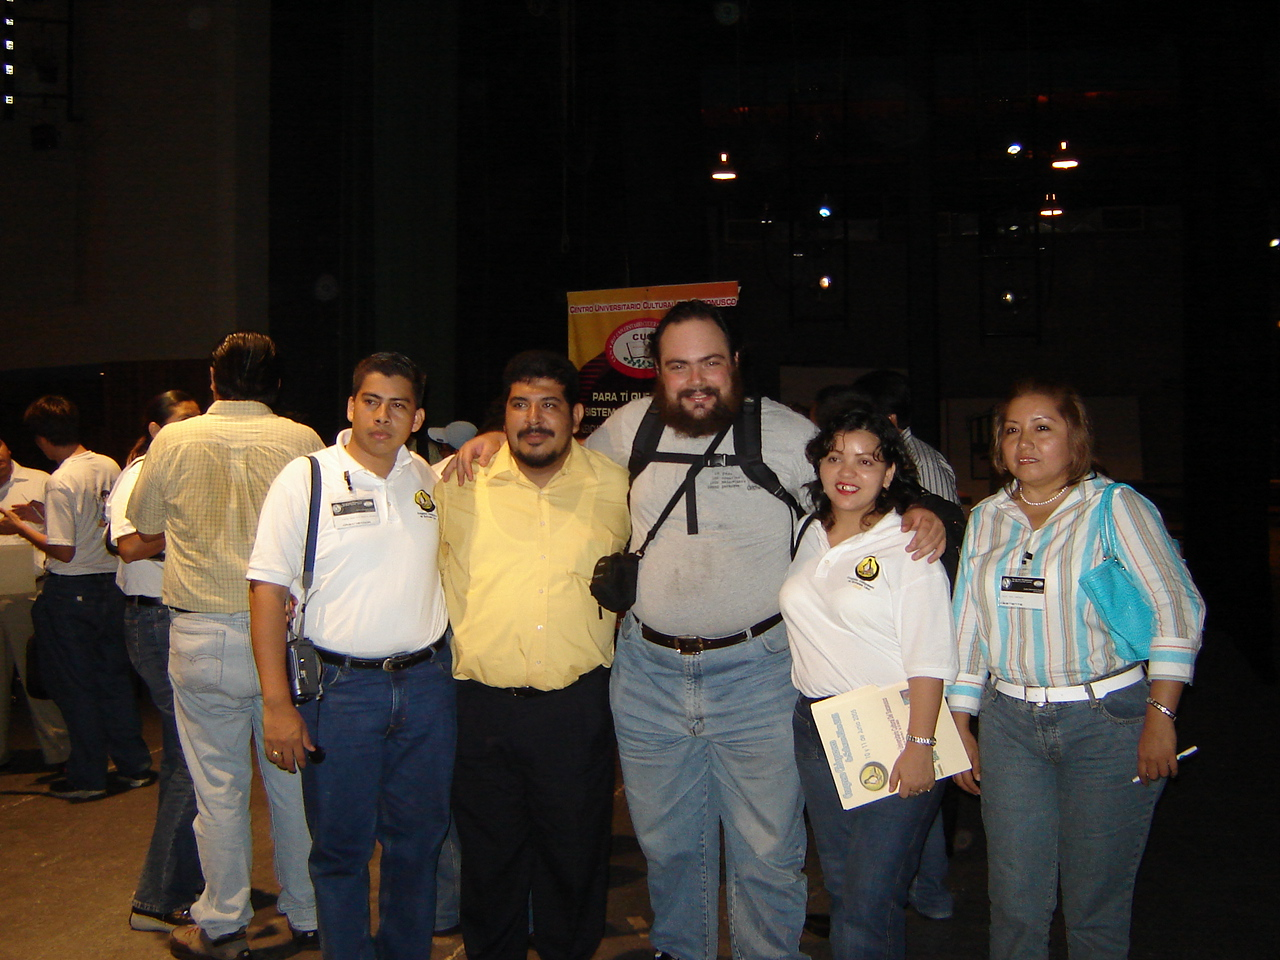 With the organizers, after closing